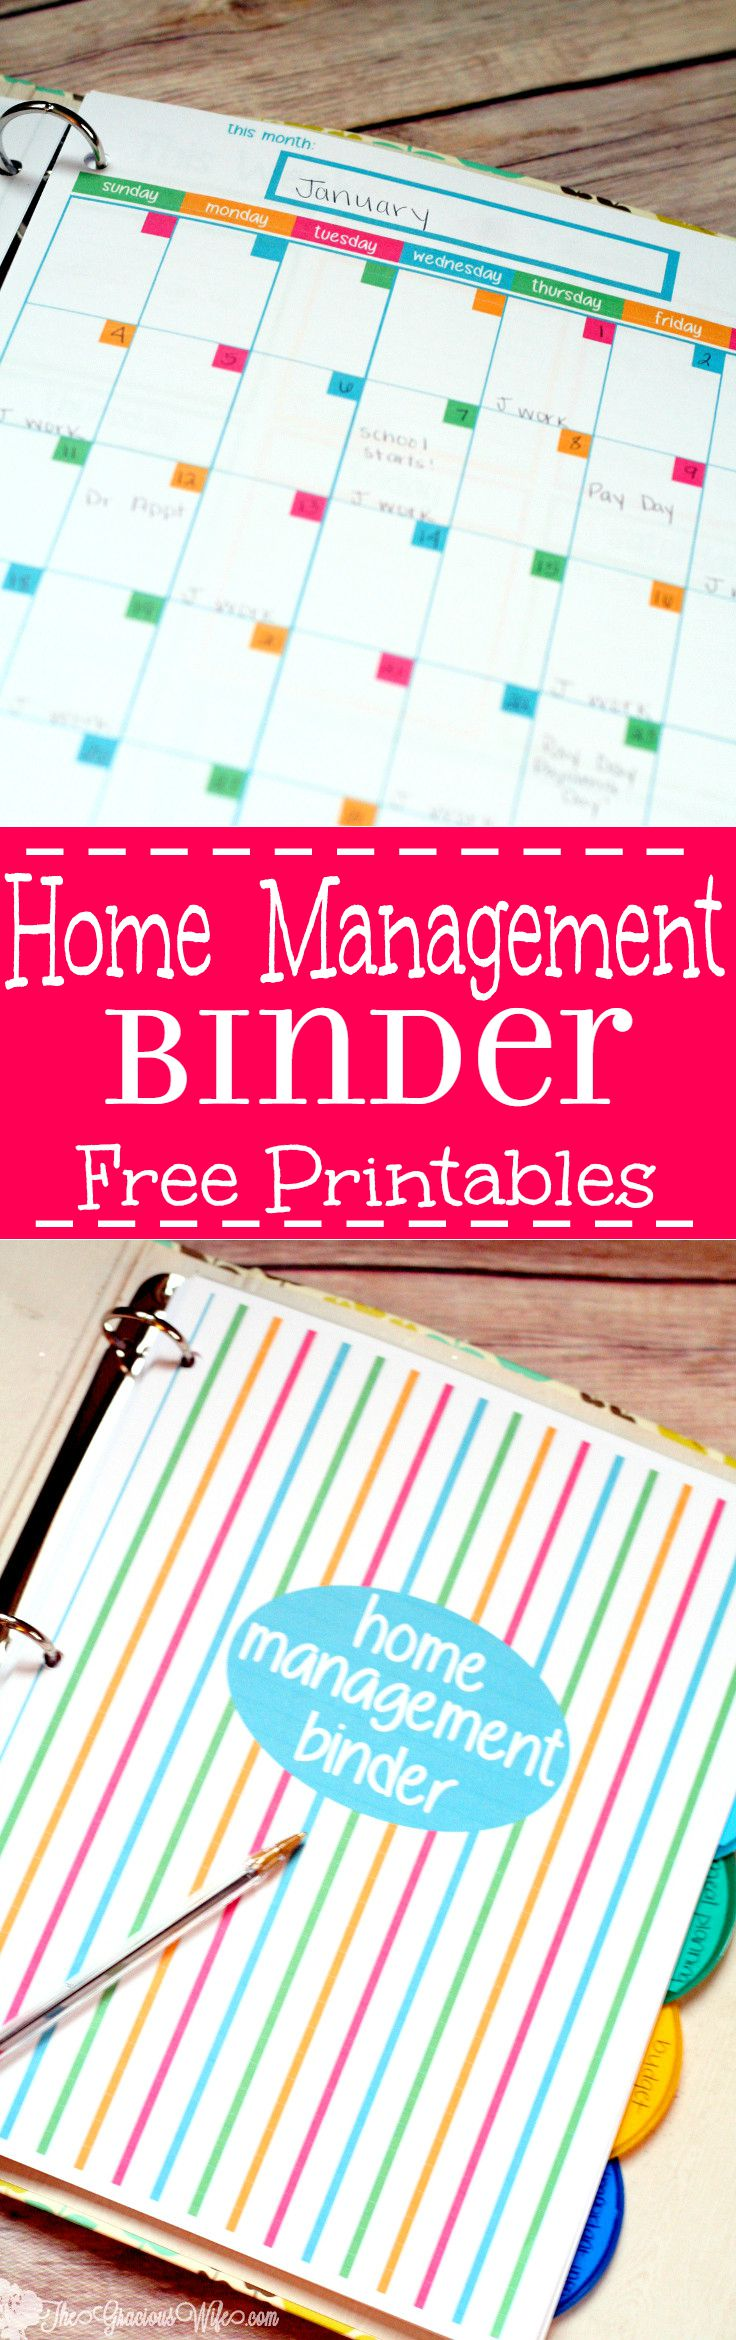 Home Management Binder Printable Pages